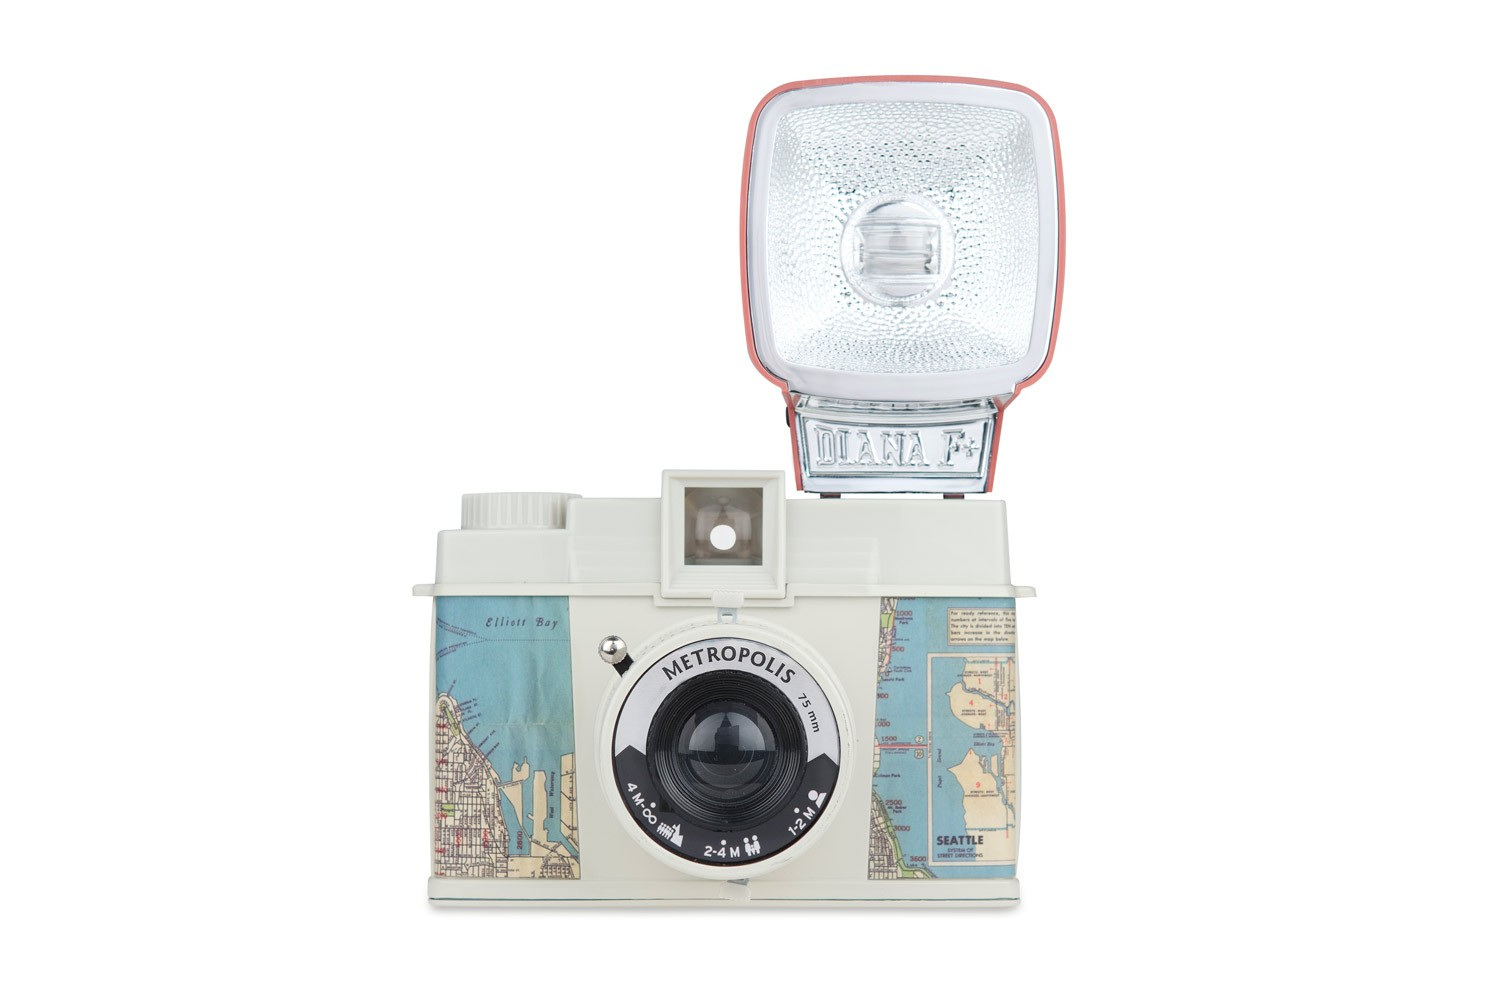 Diana F+ Camera and Flash (Metropolis Edition)